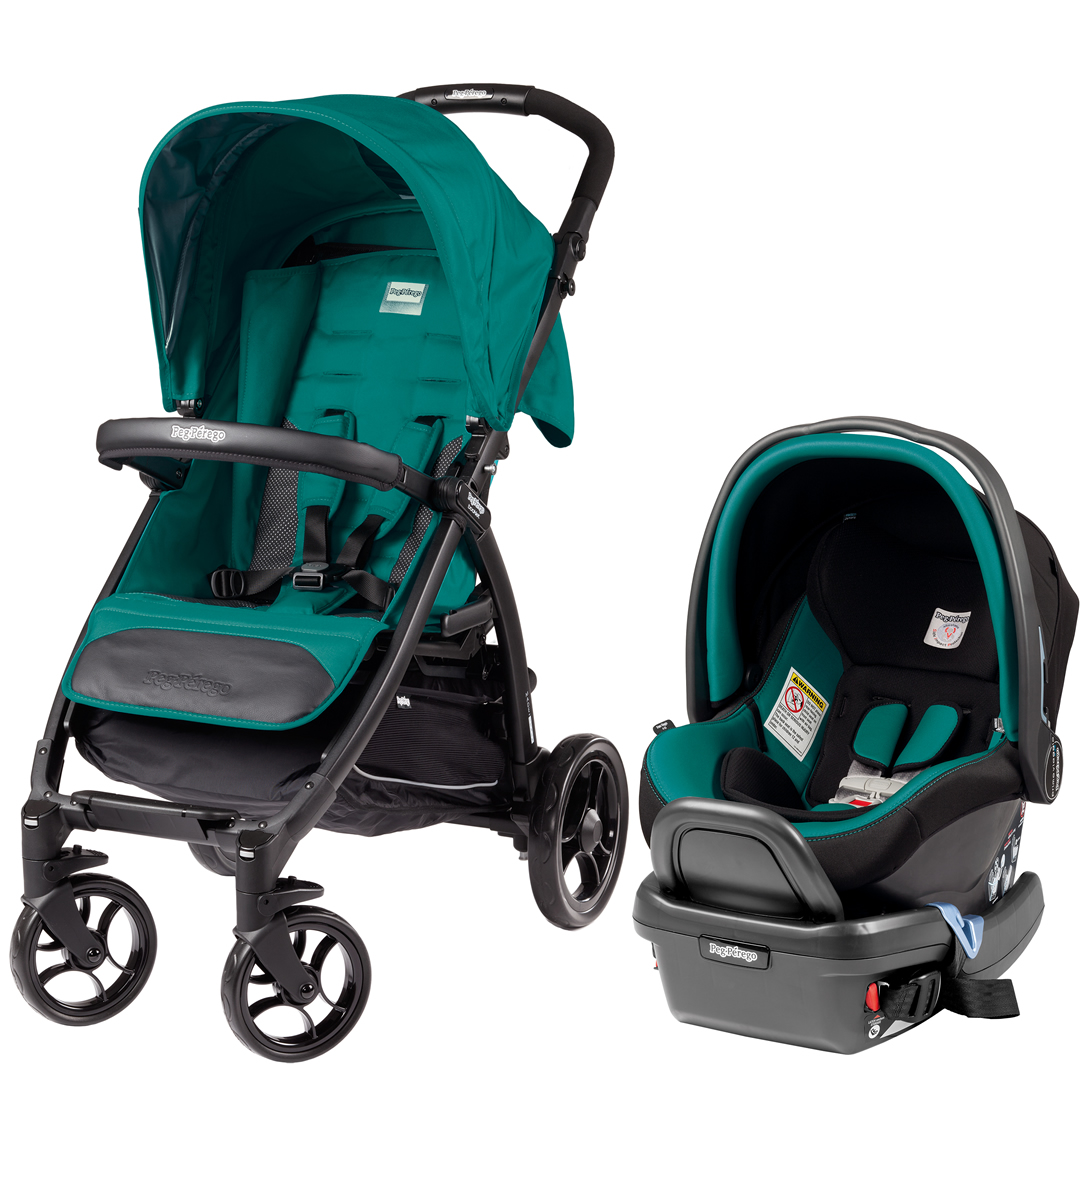 Peg-Perego Booklet Travel System - Aquamarine